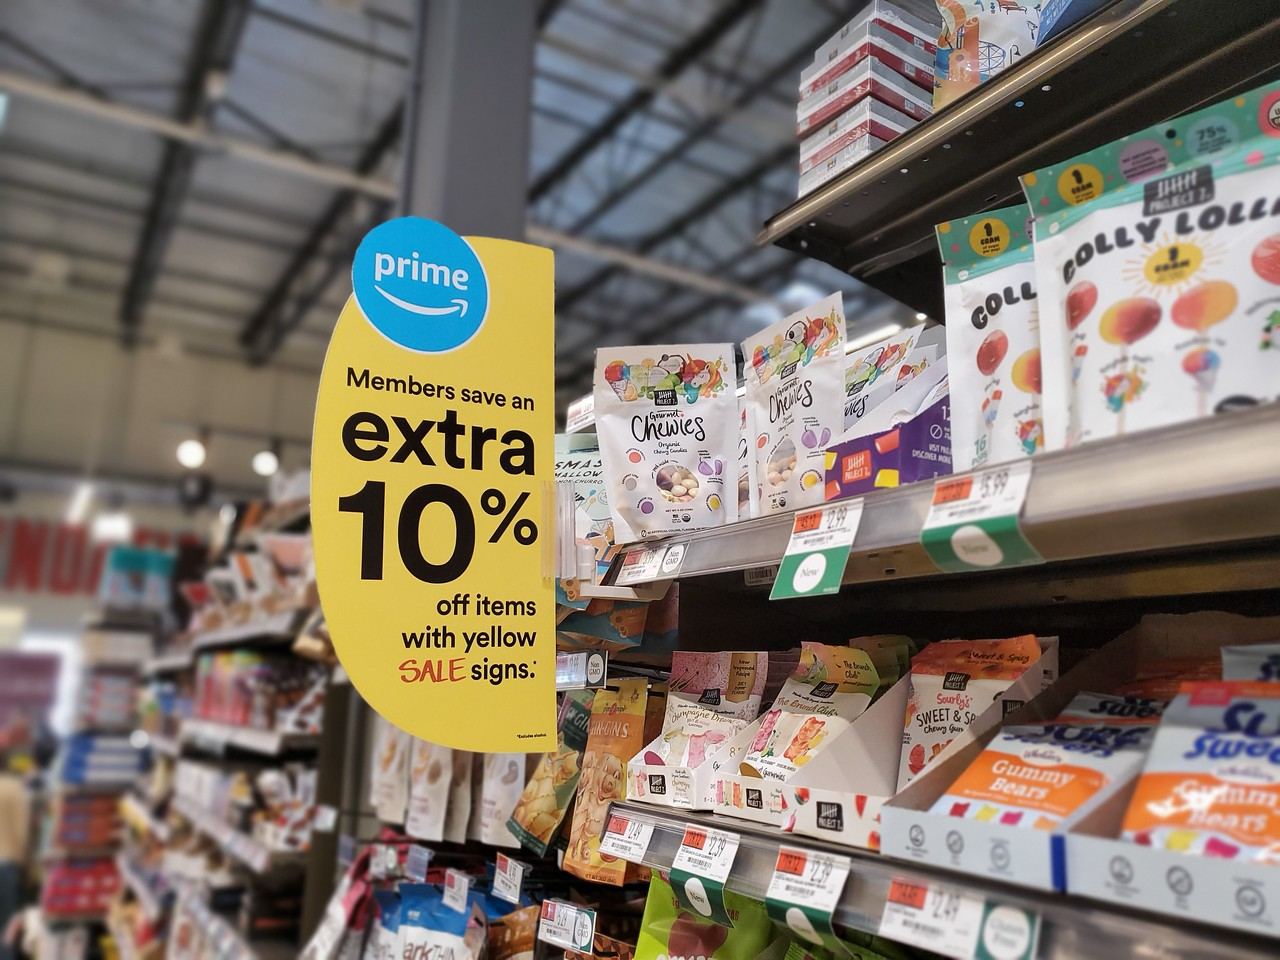 Extra 10% off for Prime members sign in store aisle